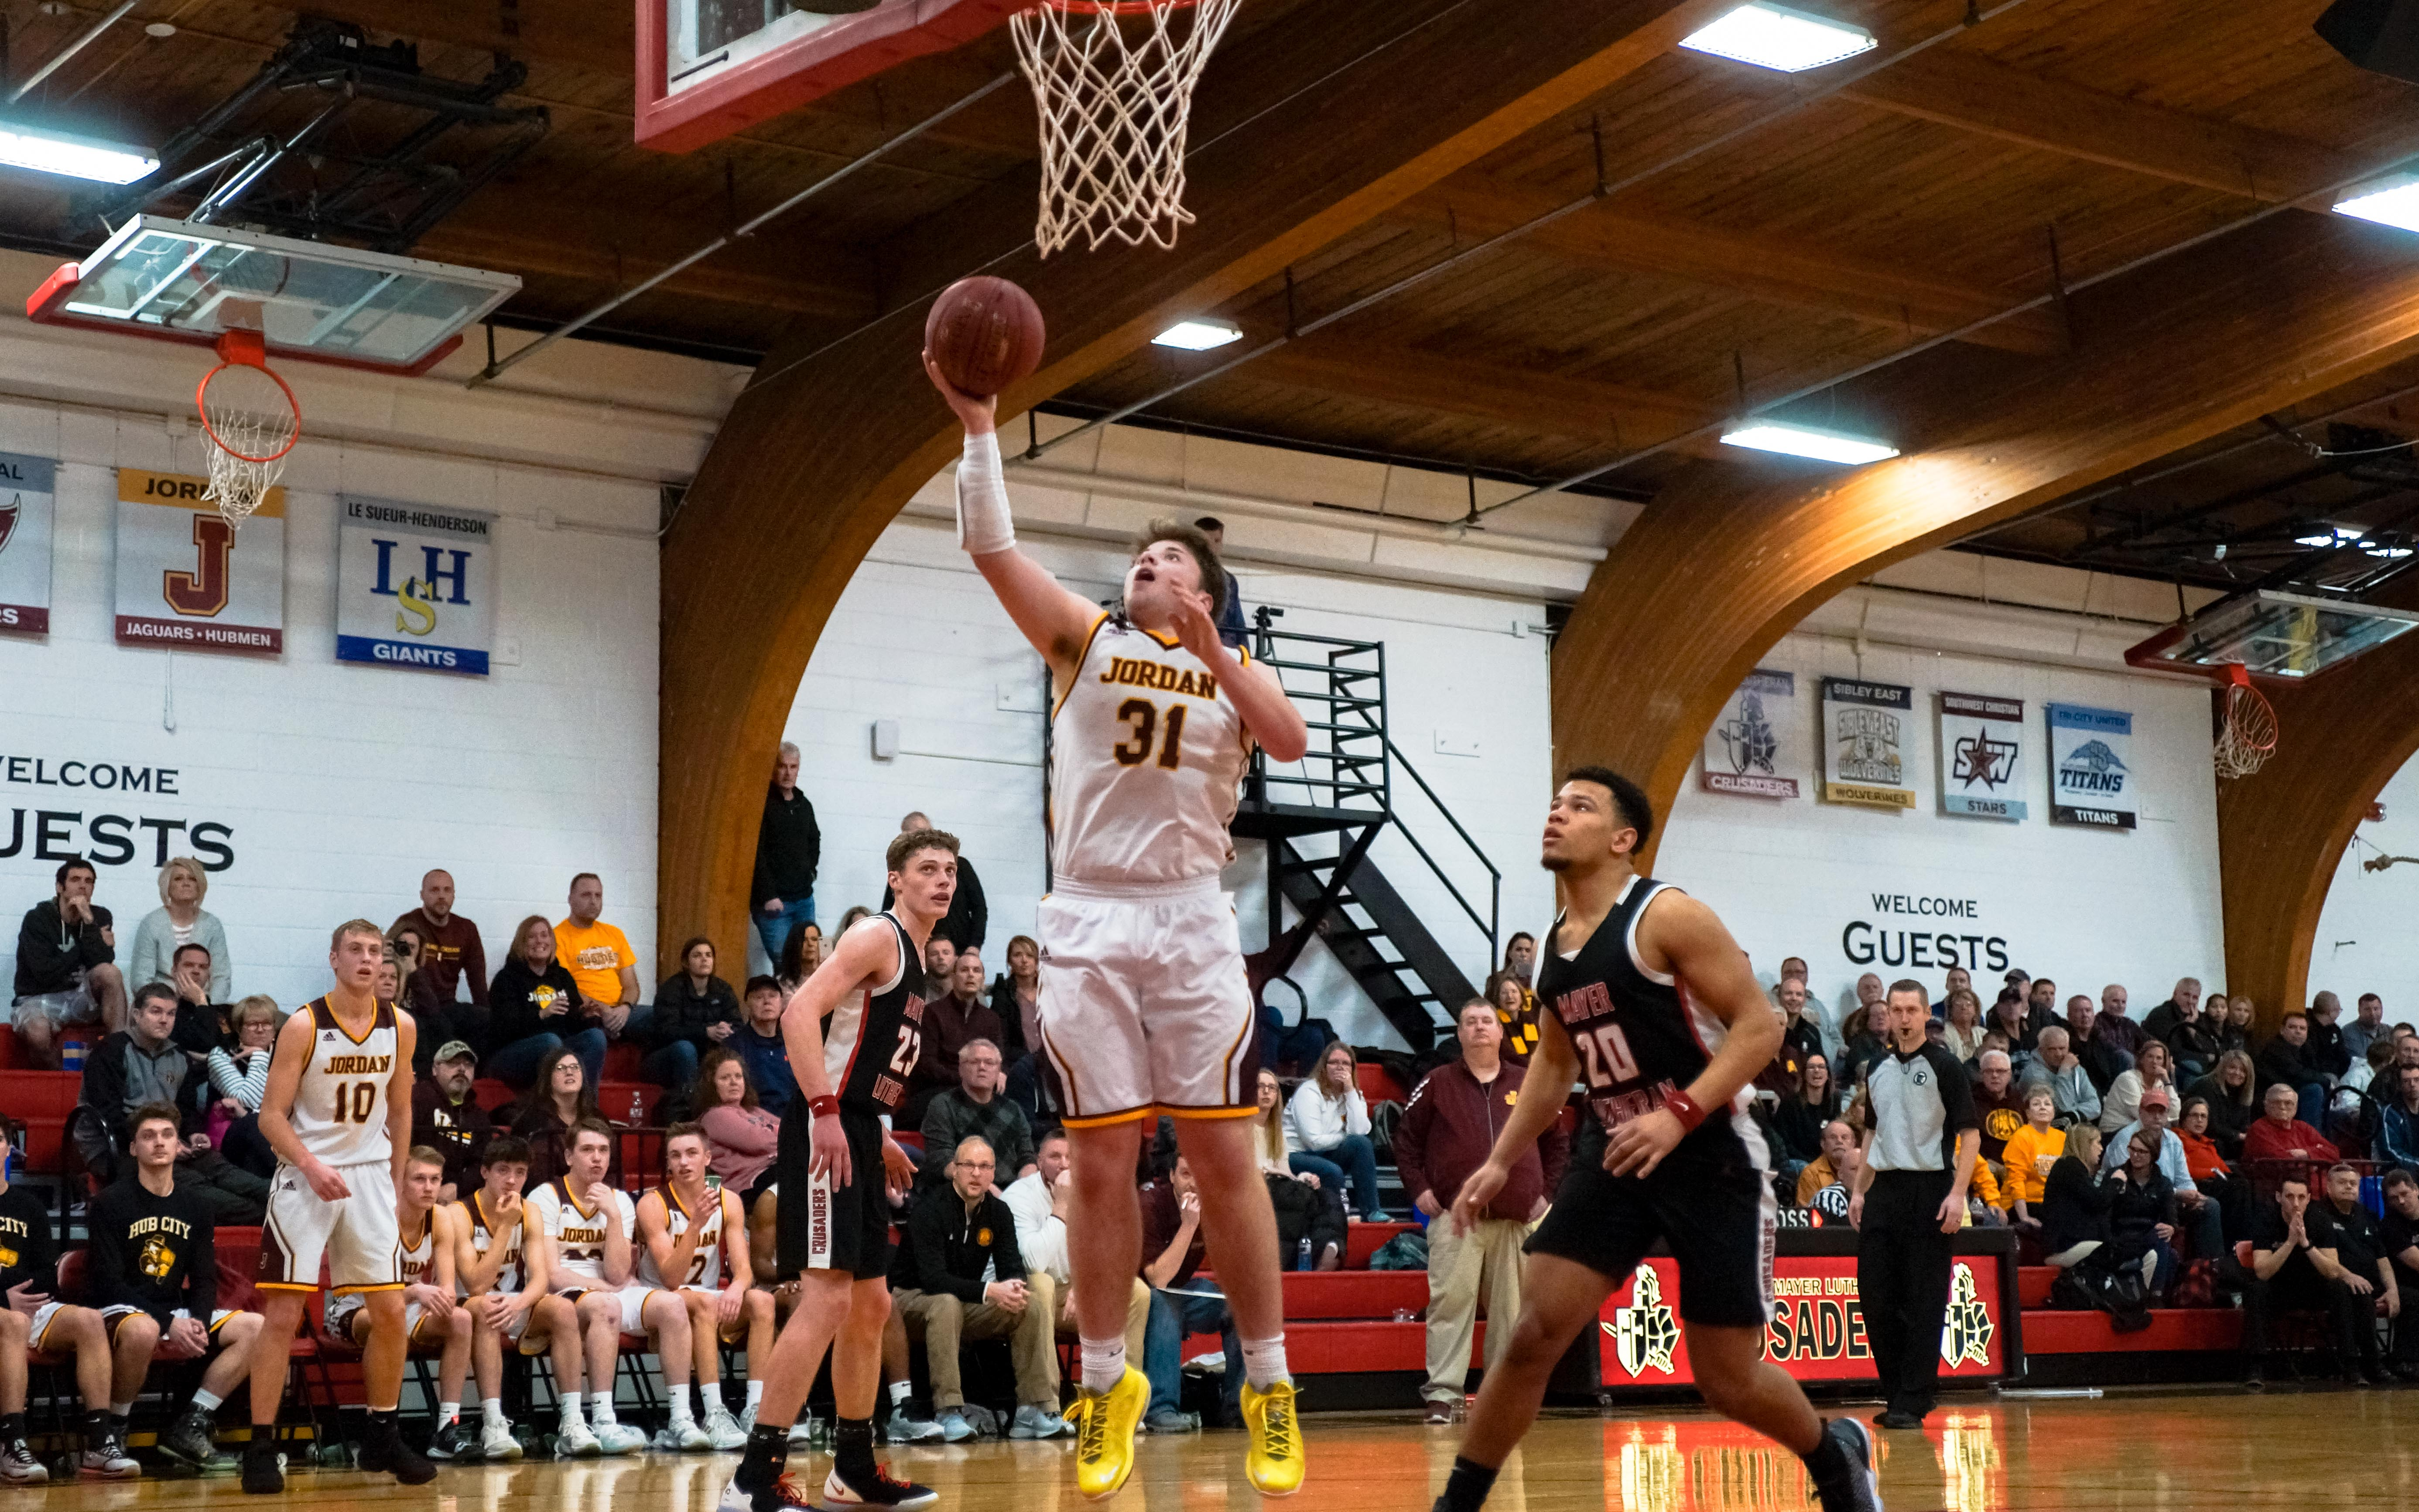 Jordan's Thomas Gutzmer with two of his 12 points in Tuesday night's 62-50 road victory over Mayer Lutheran. Photo by Korey McDermott, SportsEngine